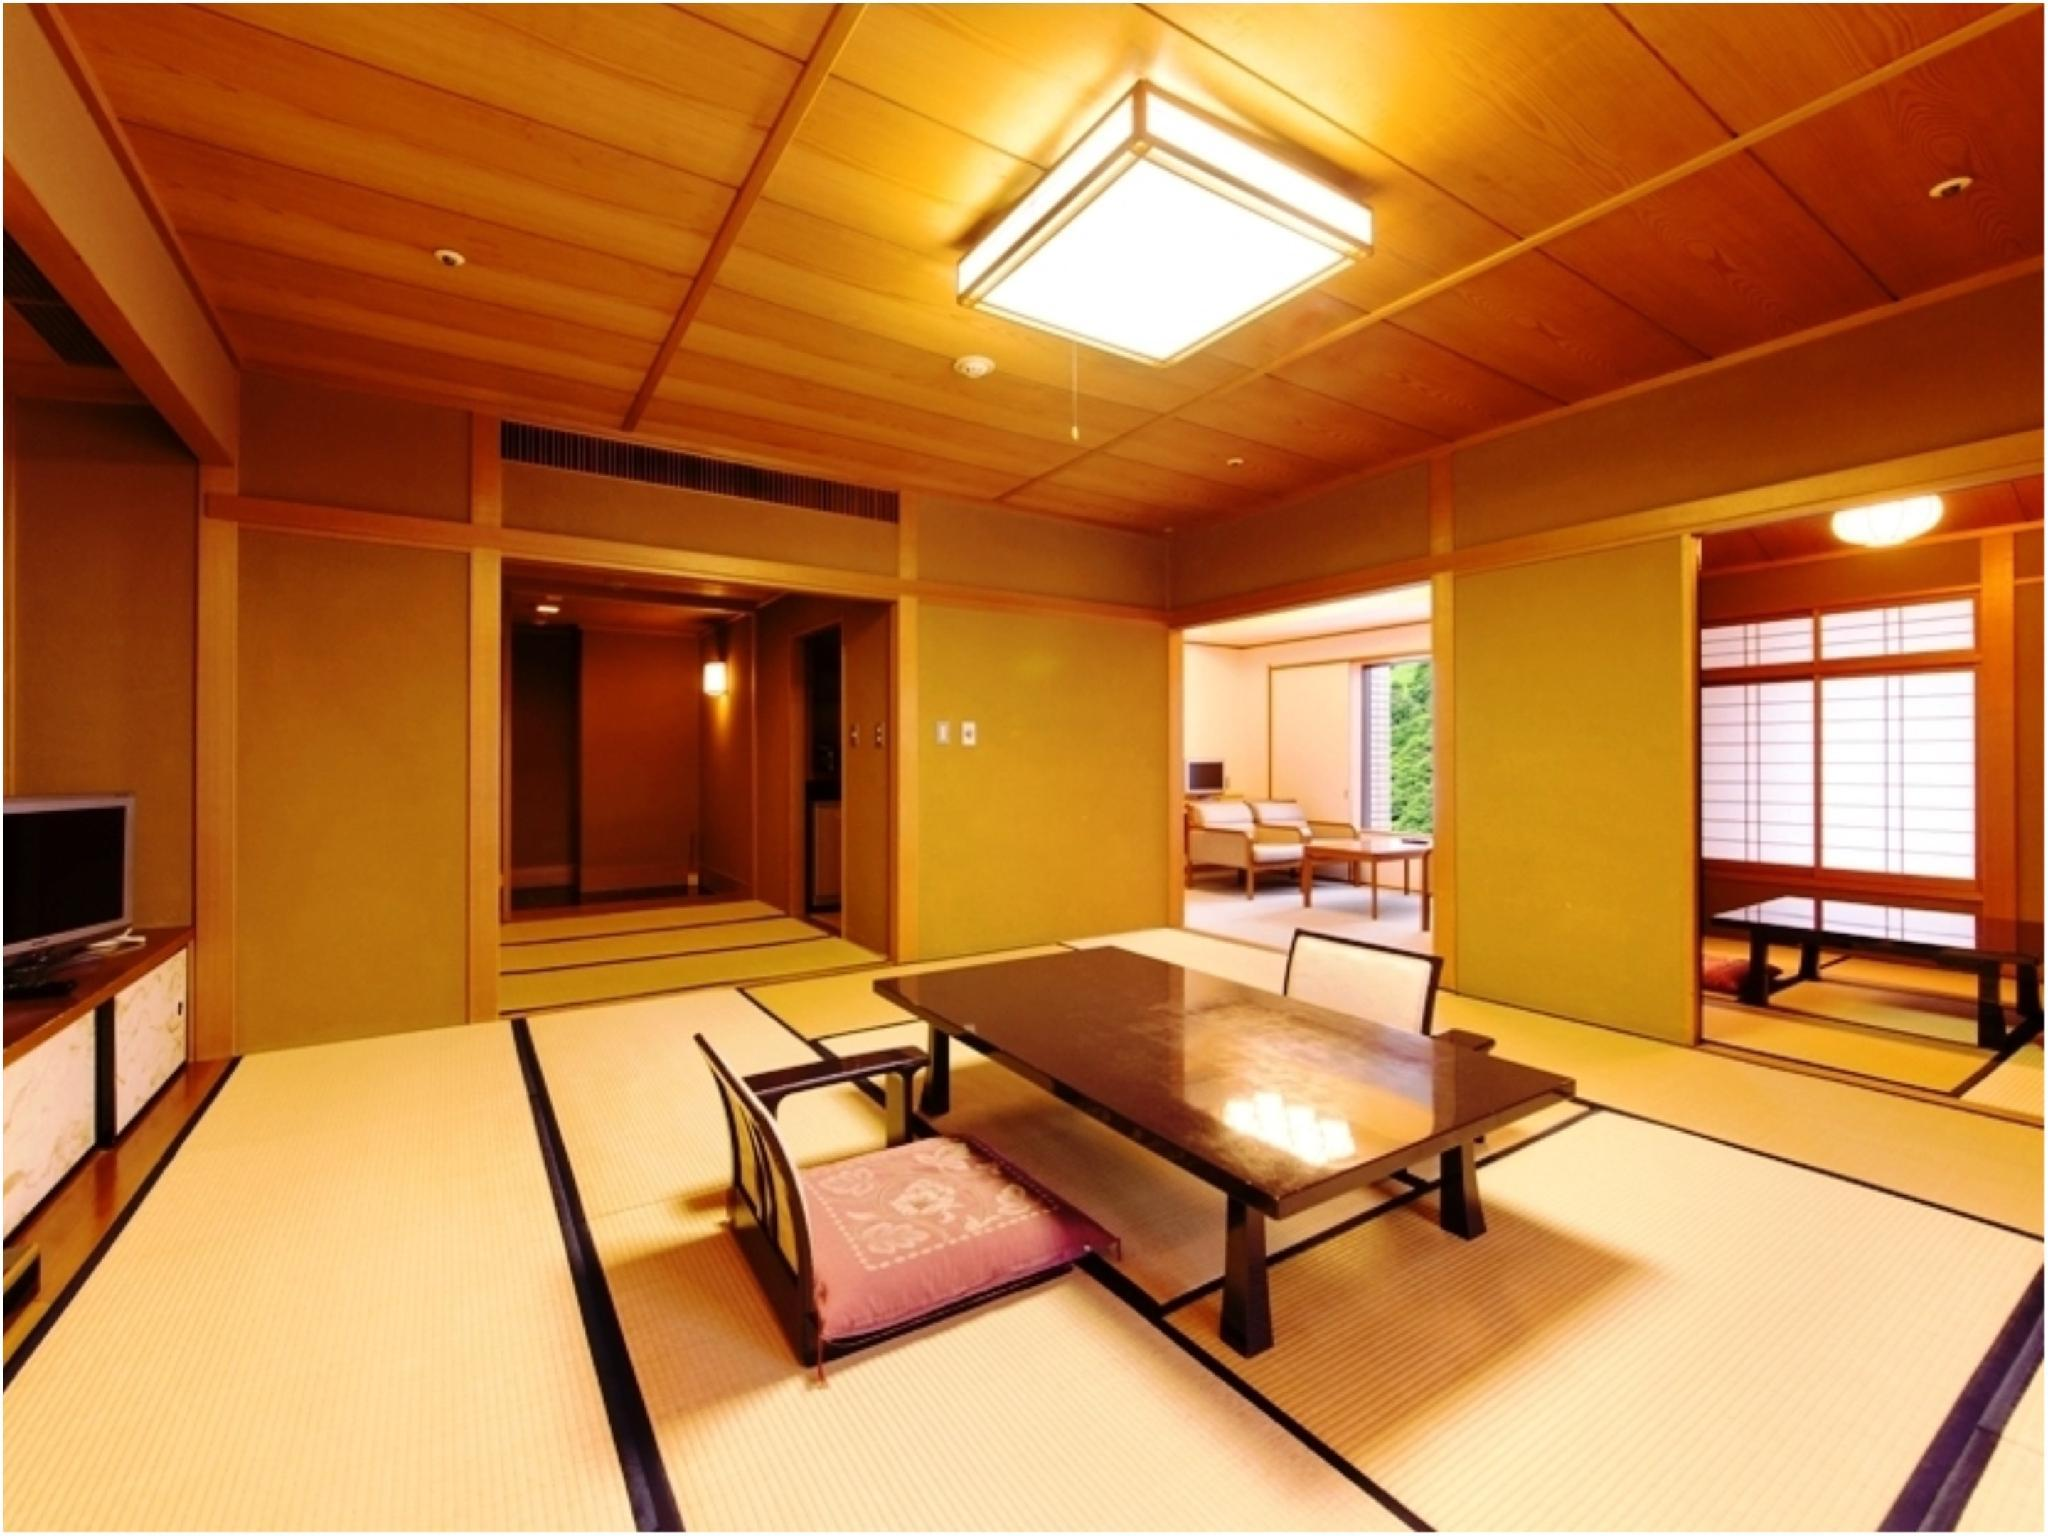 Japanese-style Room with Reception Room